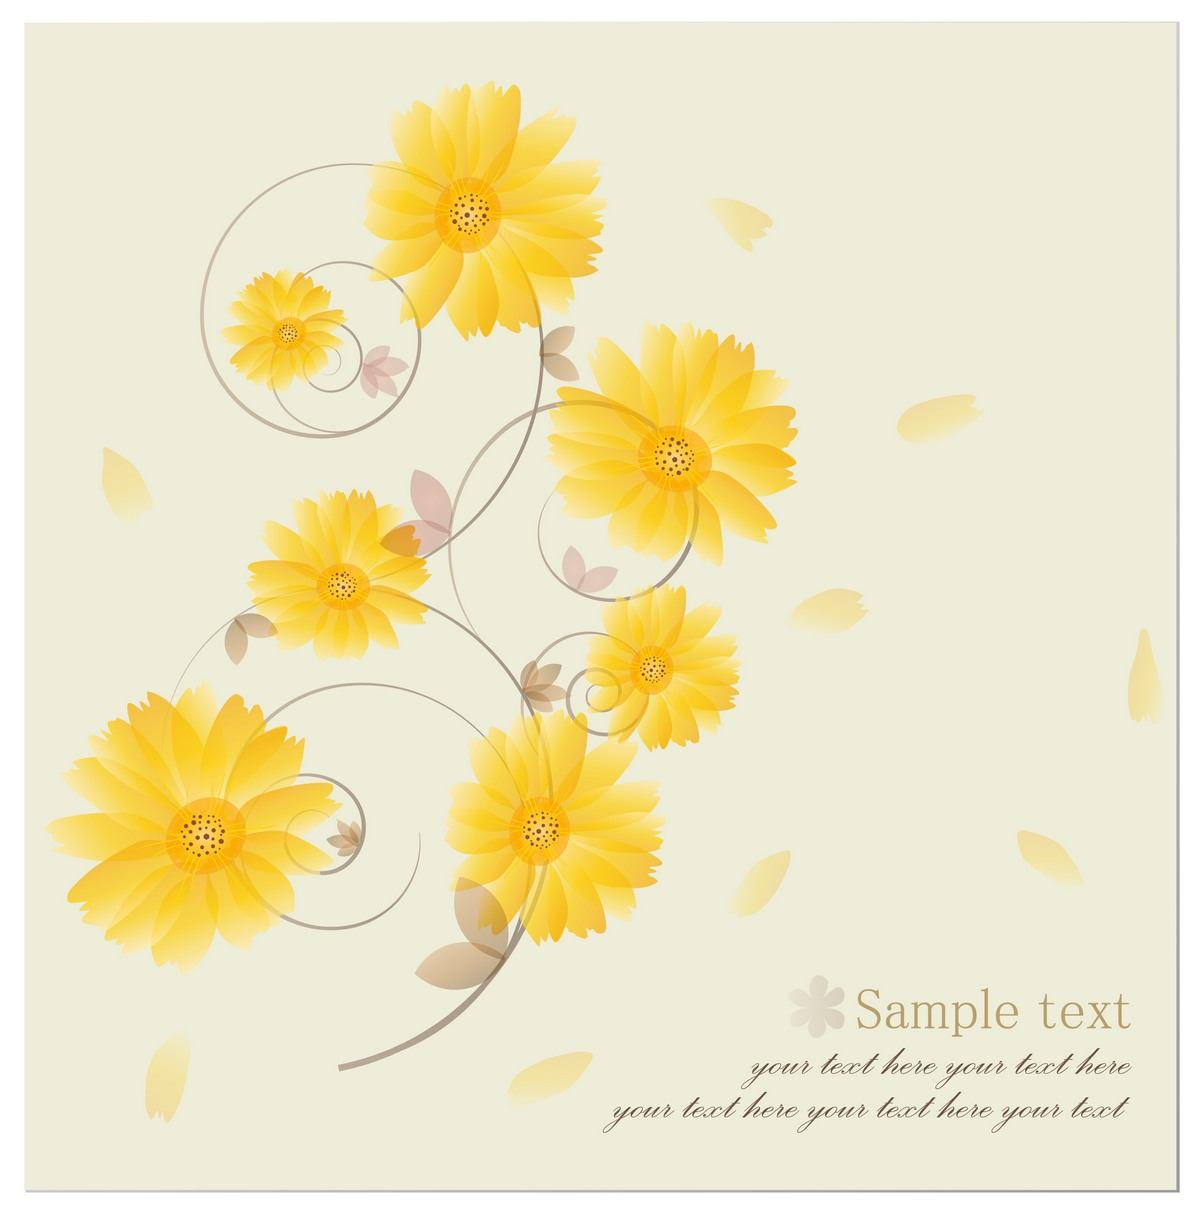 Flower Background 01 png